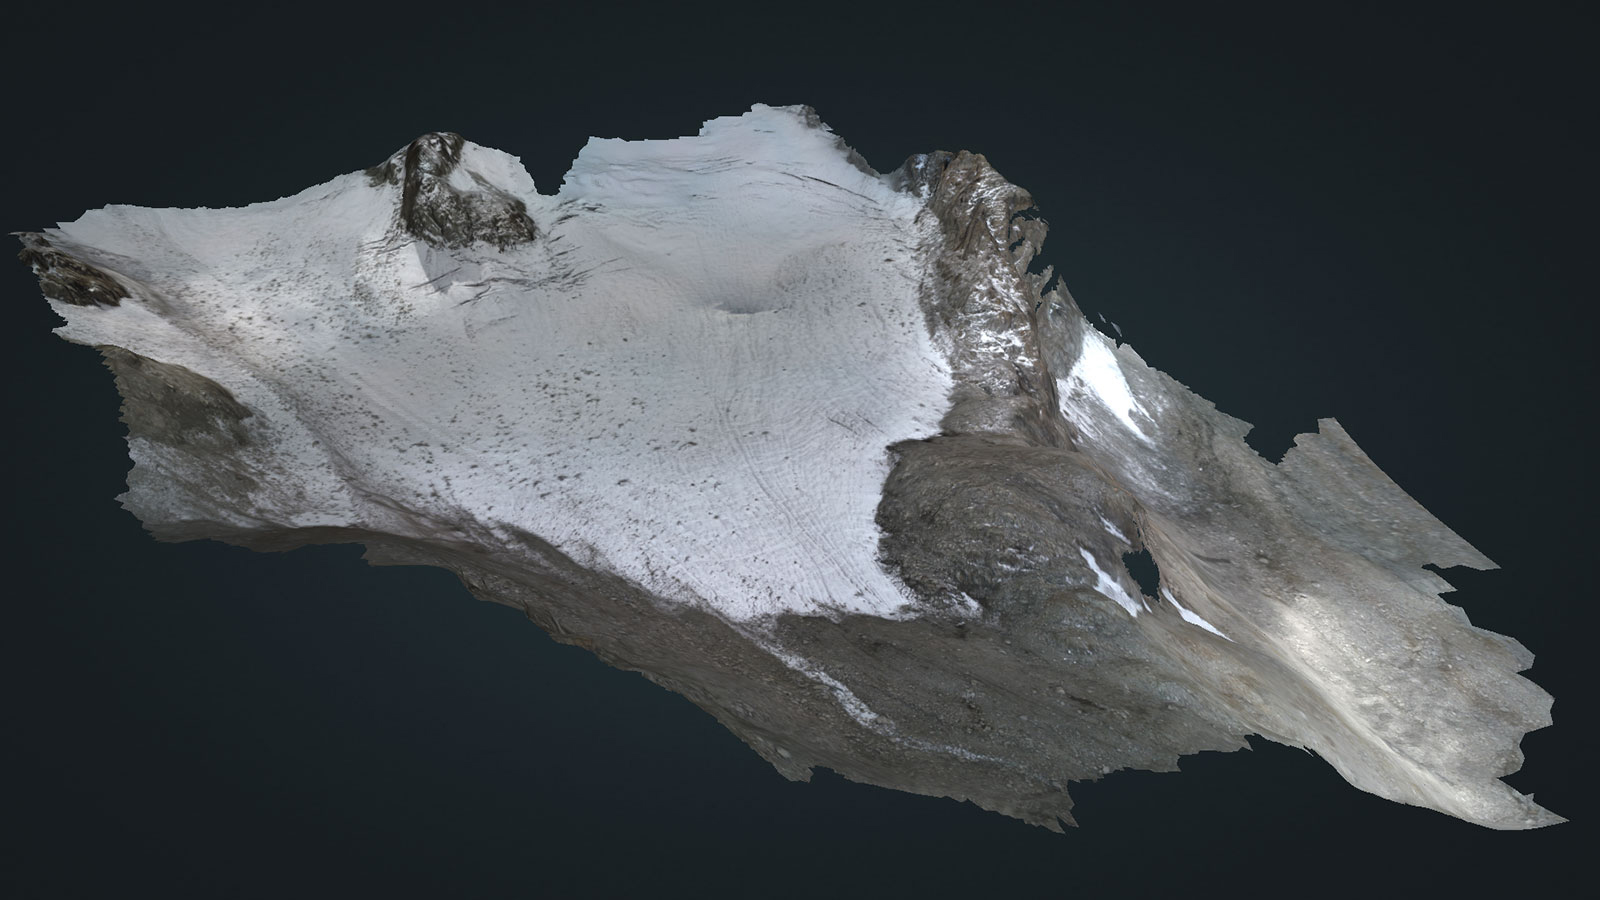 A 3D model of a glacier created in Pix4Dmapper